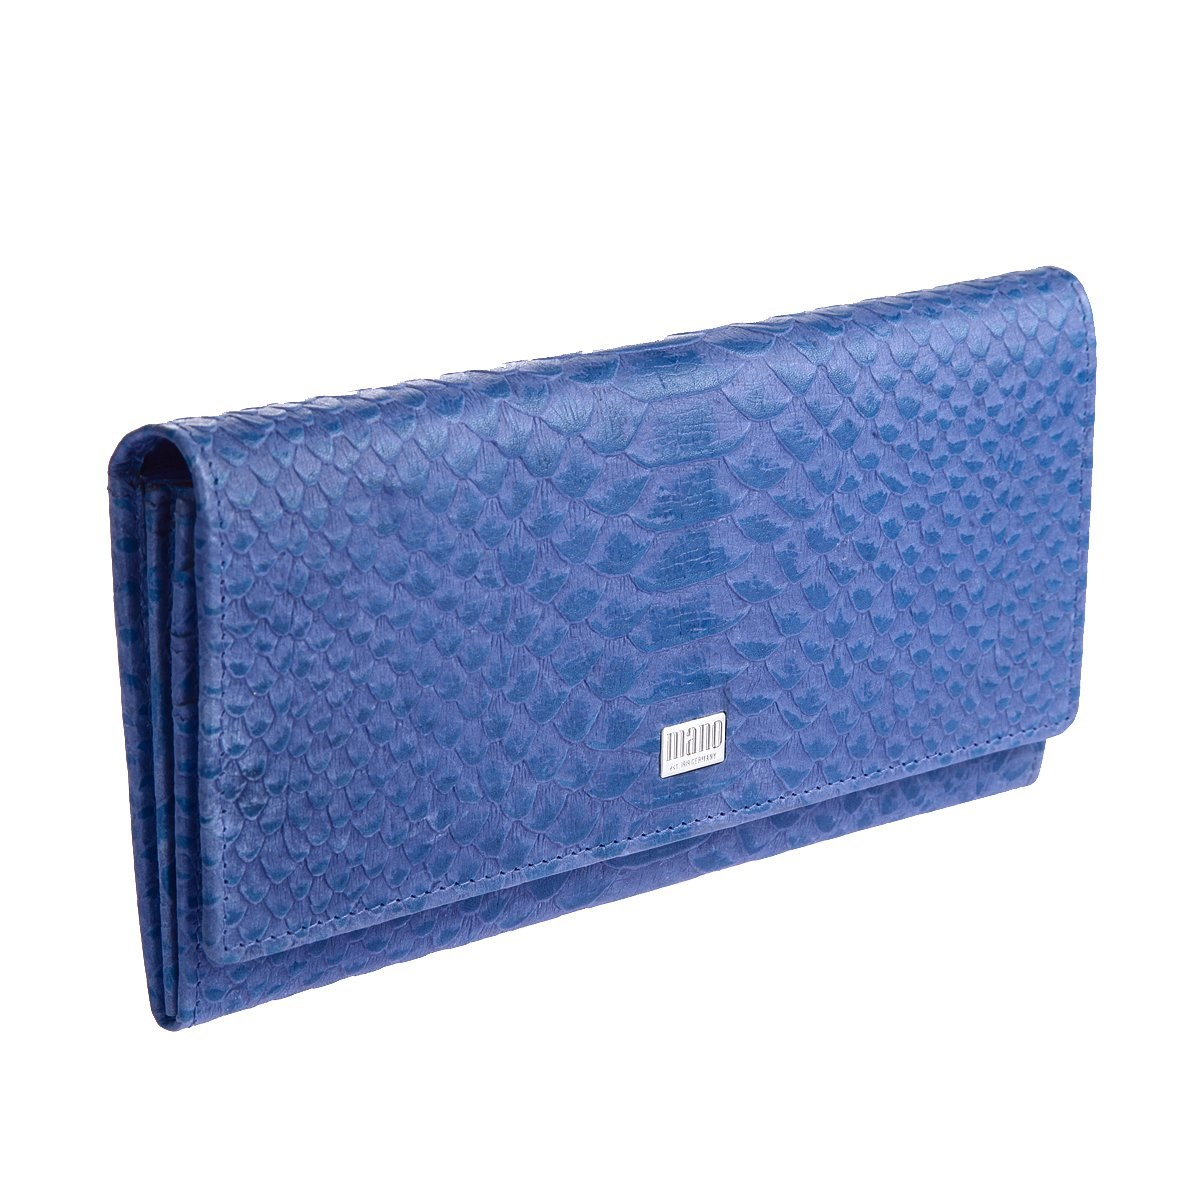 Coin Purse Mano 20150 Croco blue босоножки croco